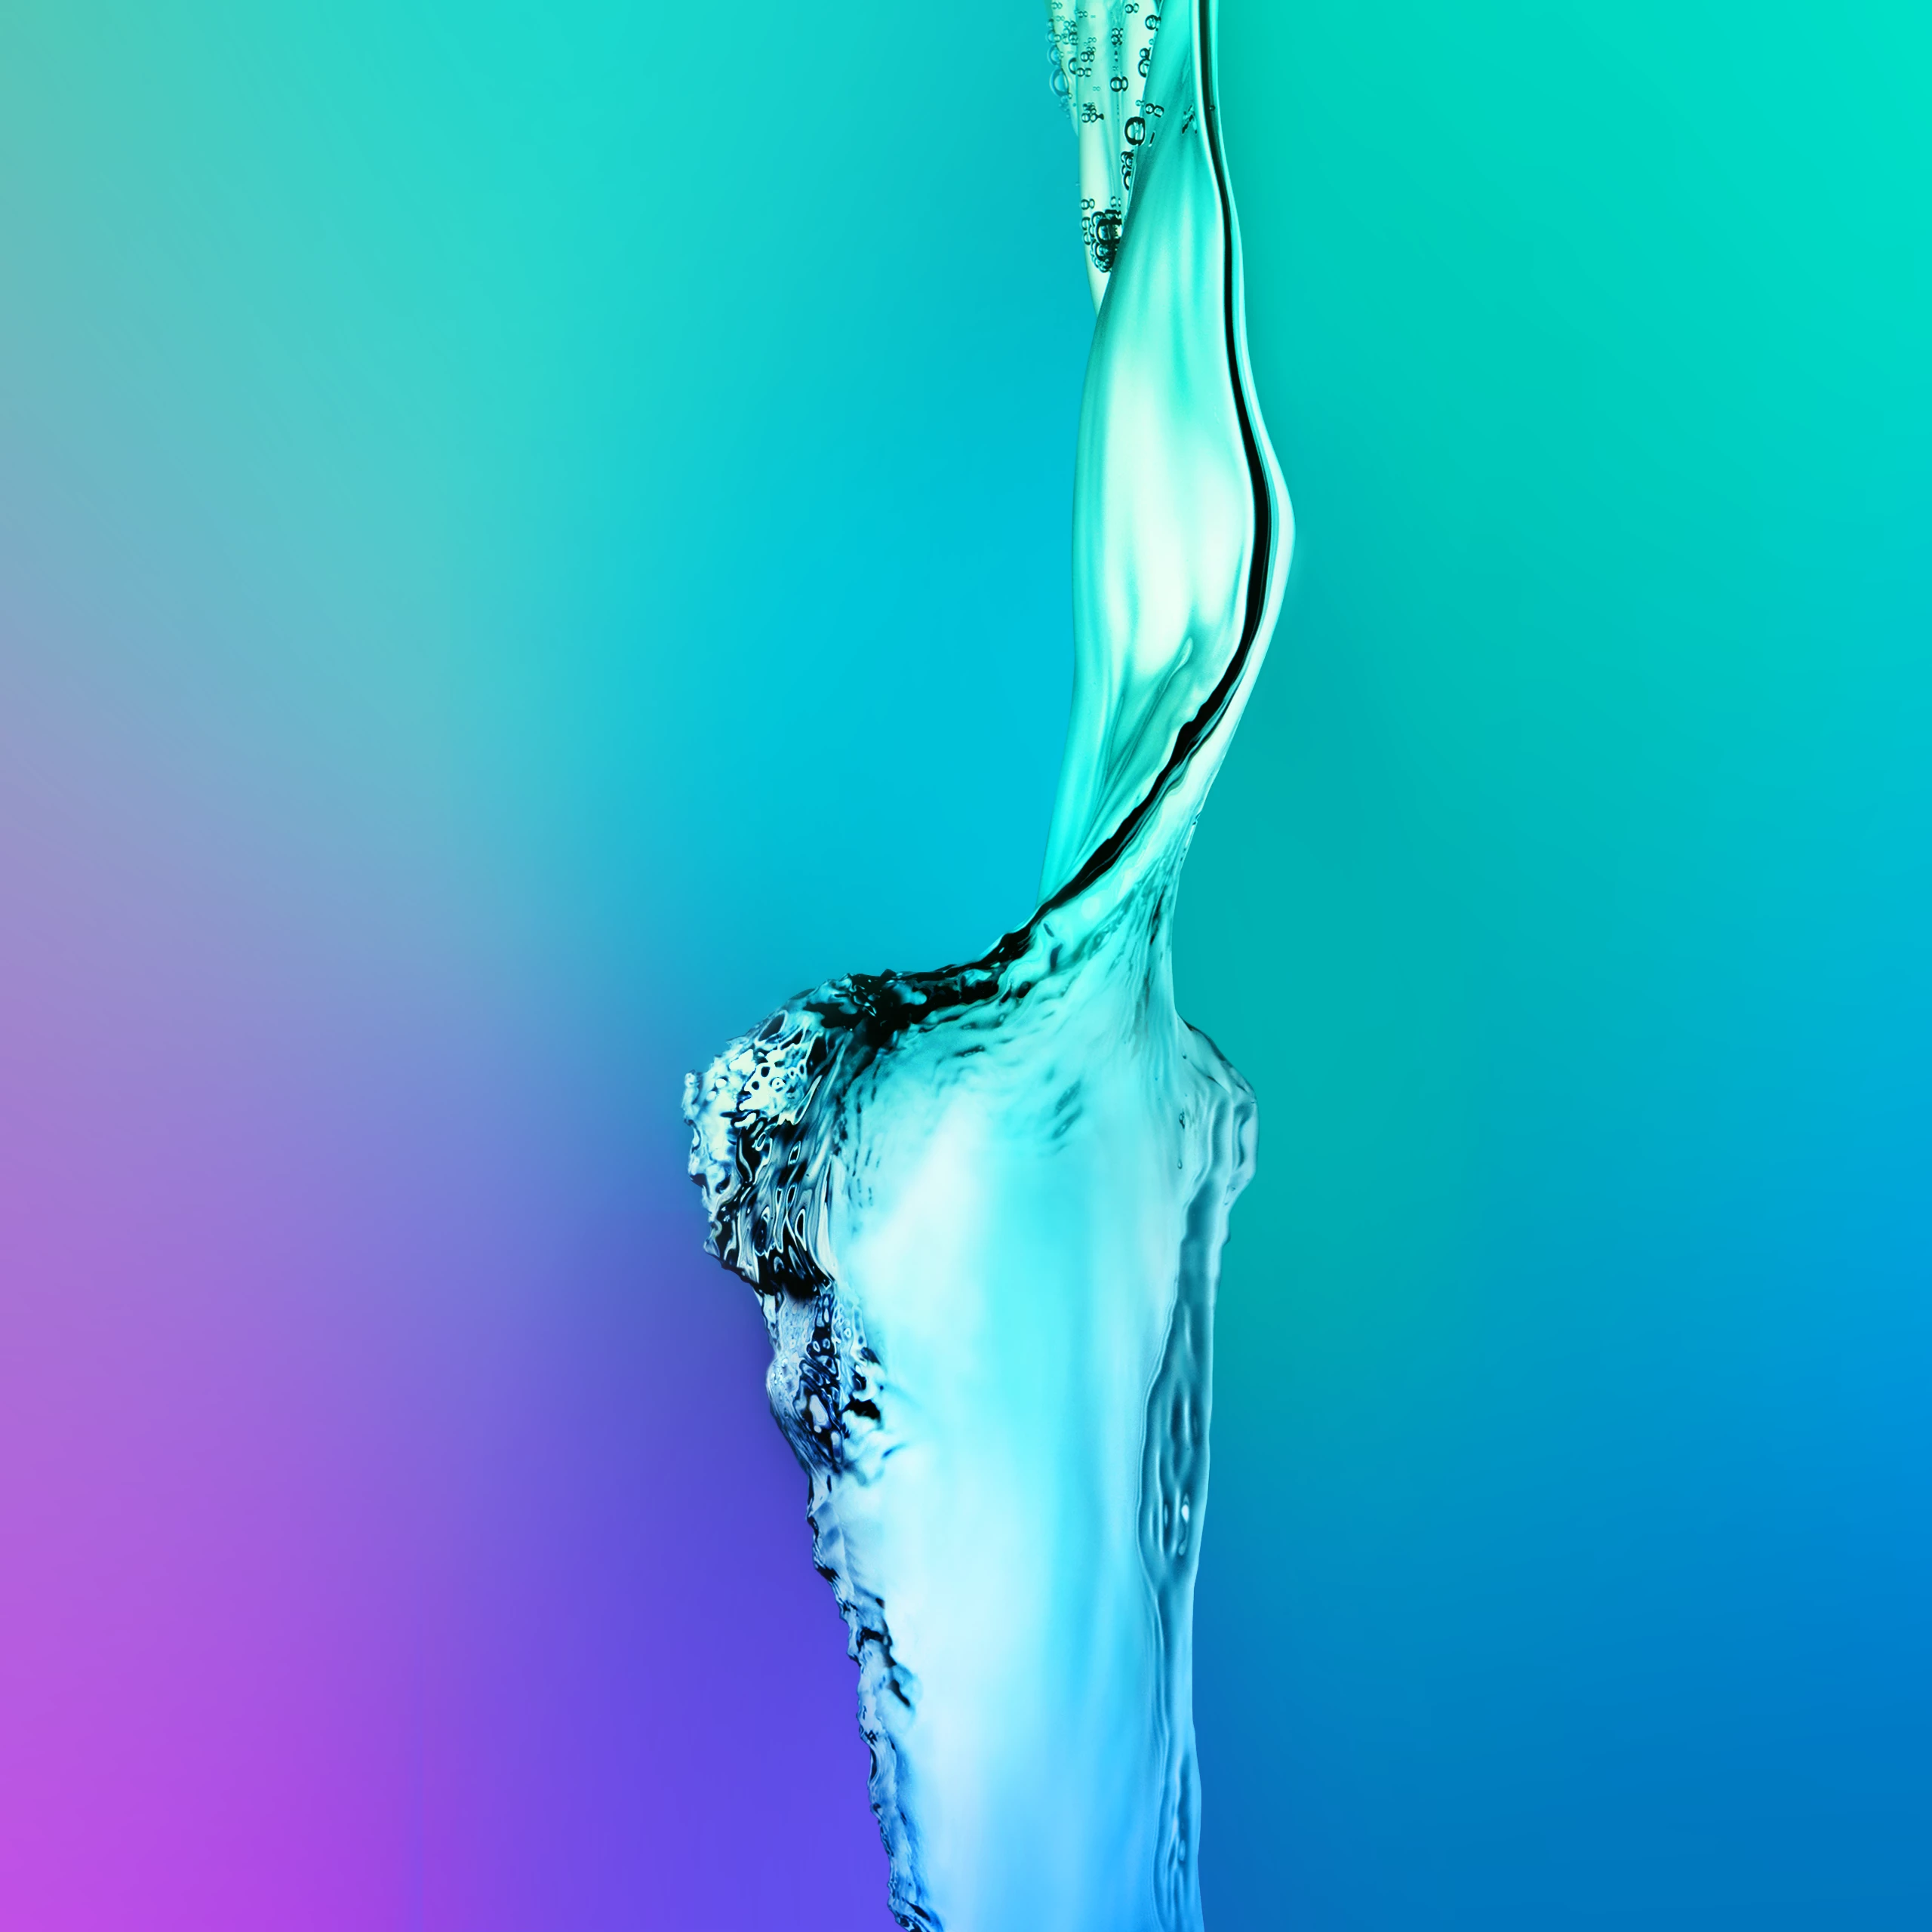 Samsung Galaxy Note 5 Stock Wallpapers 3